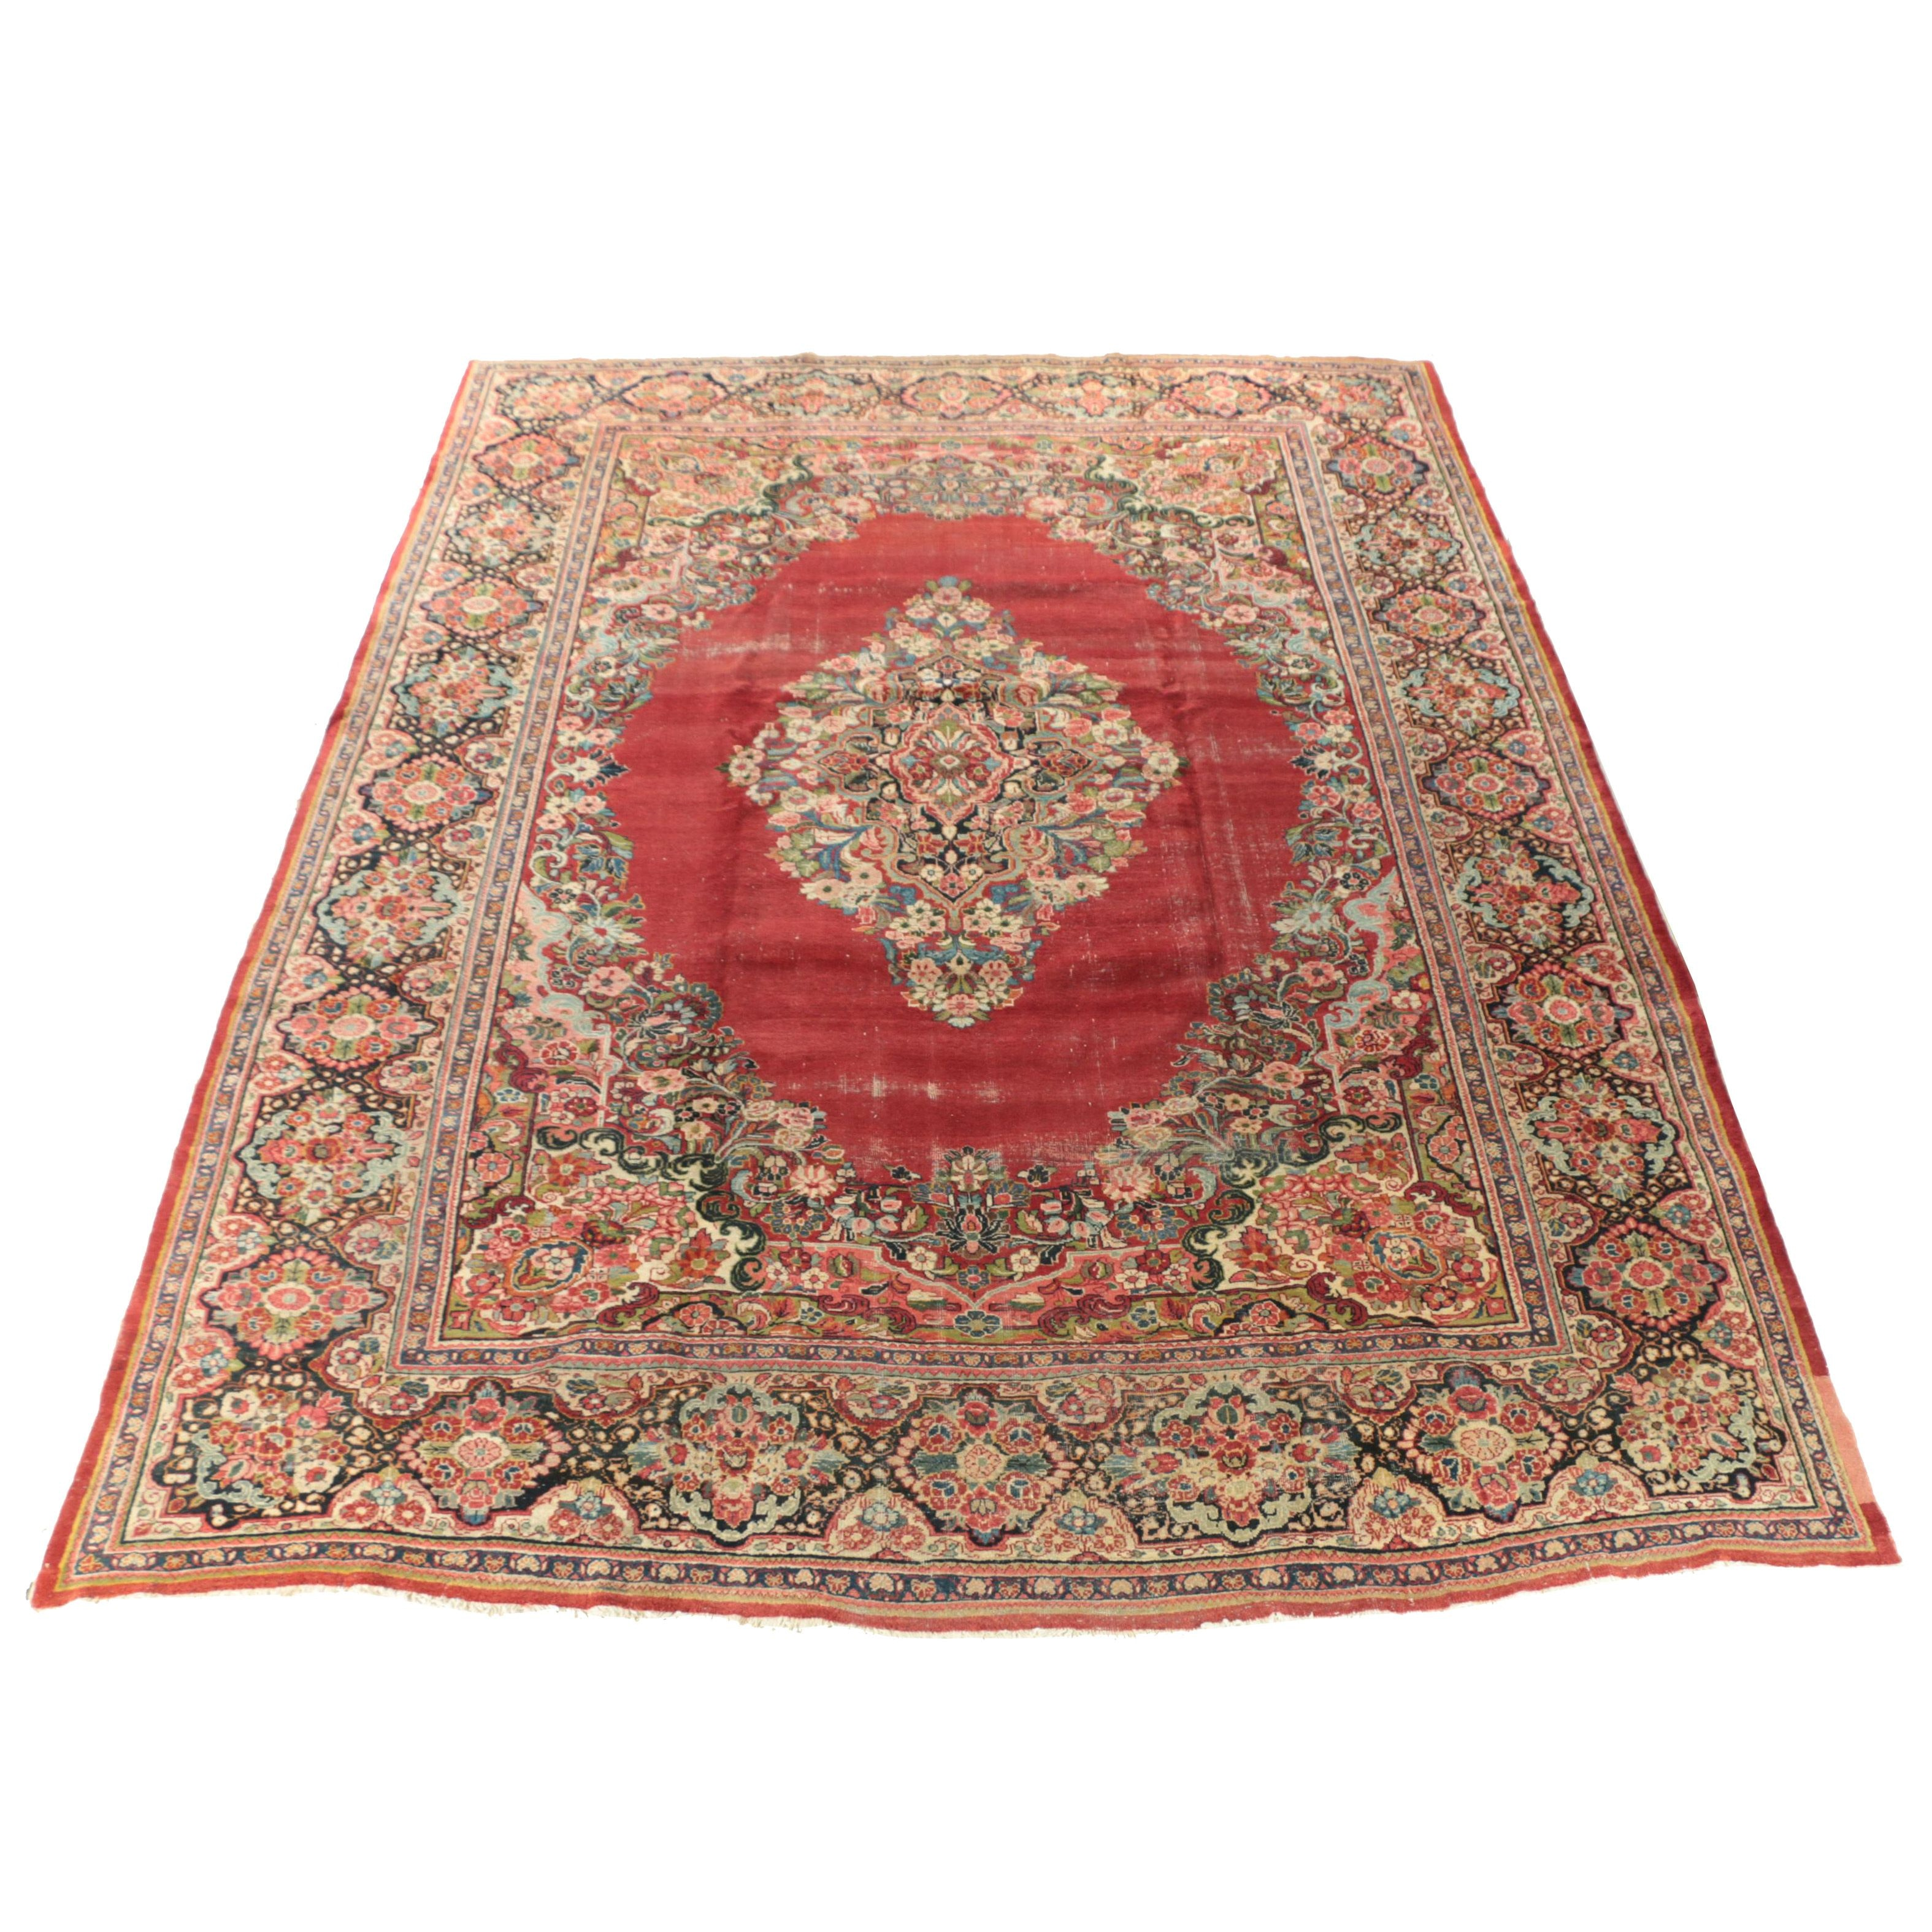 Hand-Knotted Persian Mahal Wool Palace Sized Rug